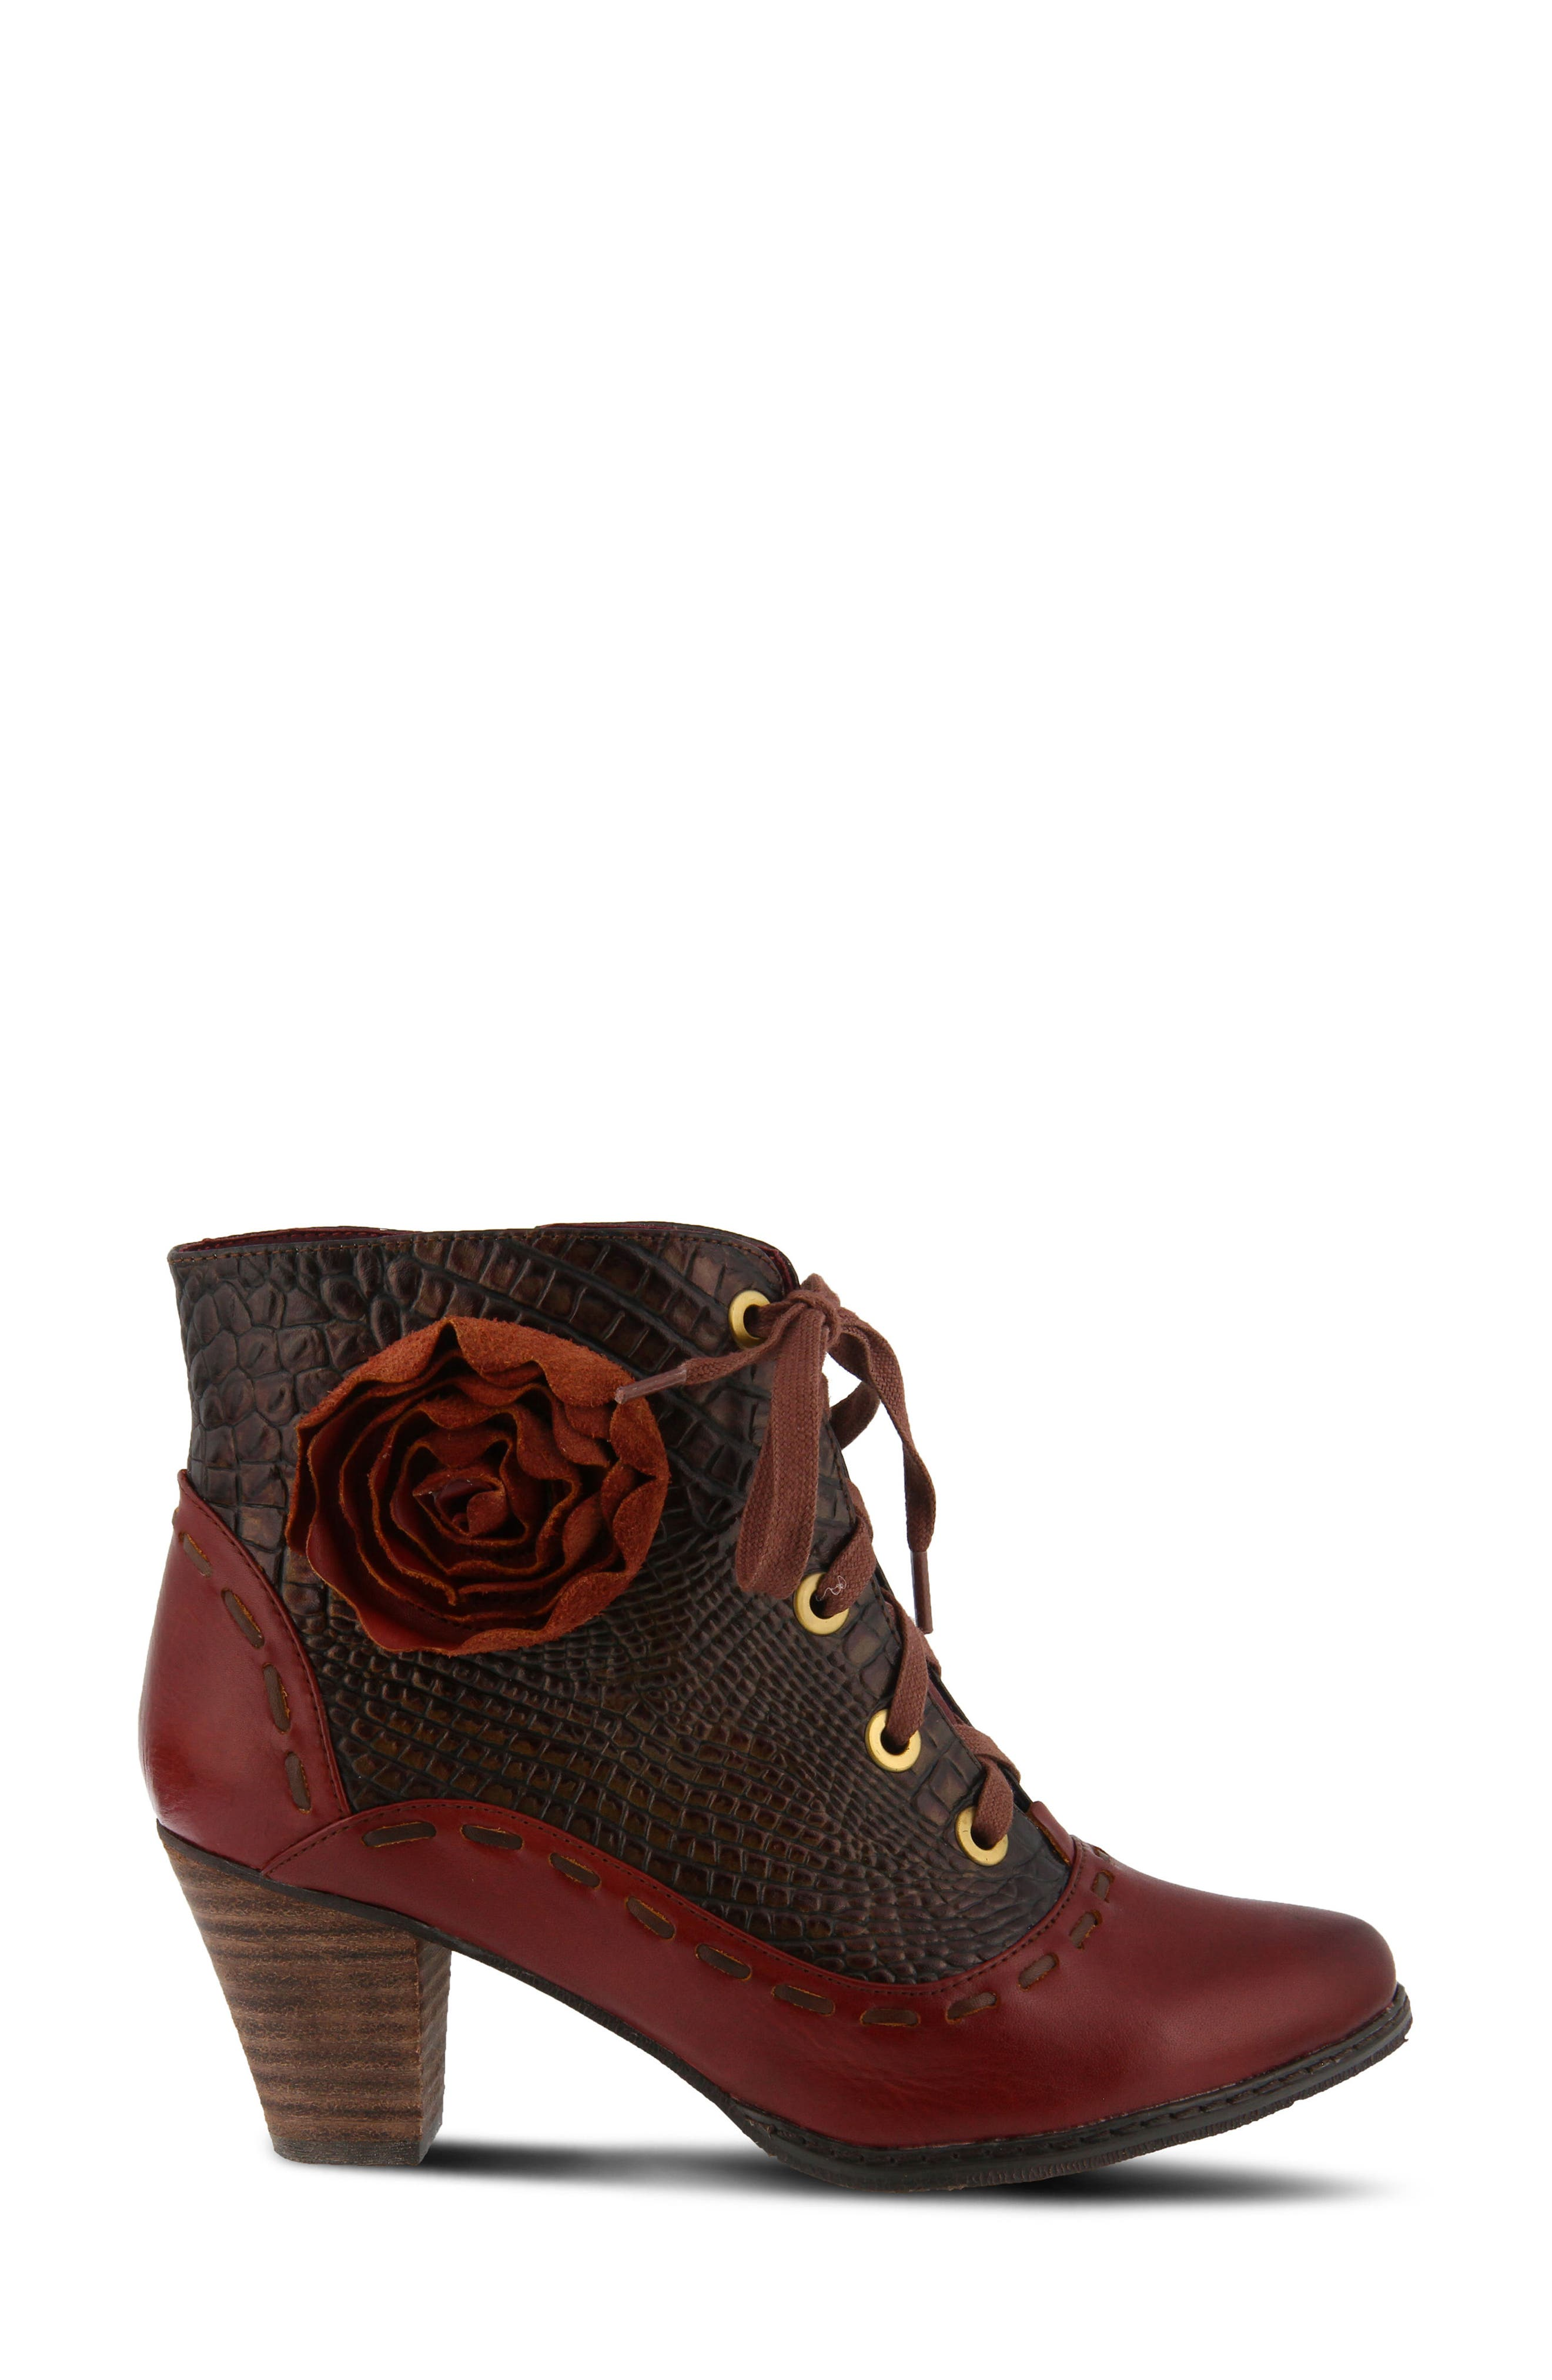 L'Artiste Sufi Bootie,                             Alternate thumbnail 3, color,                             BORDEAUX LEATHER